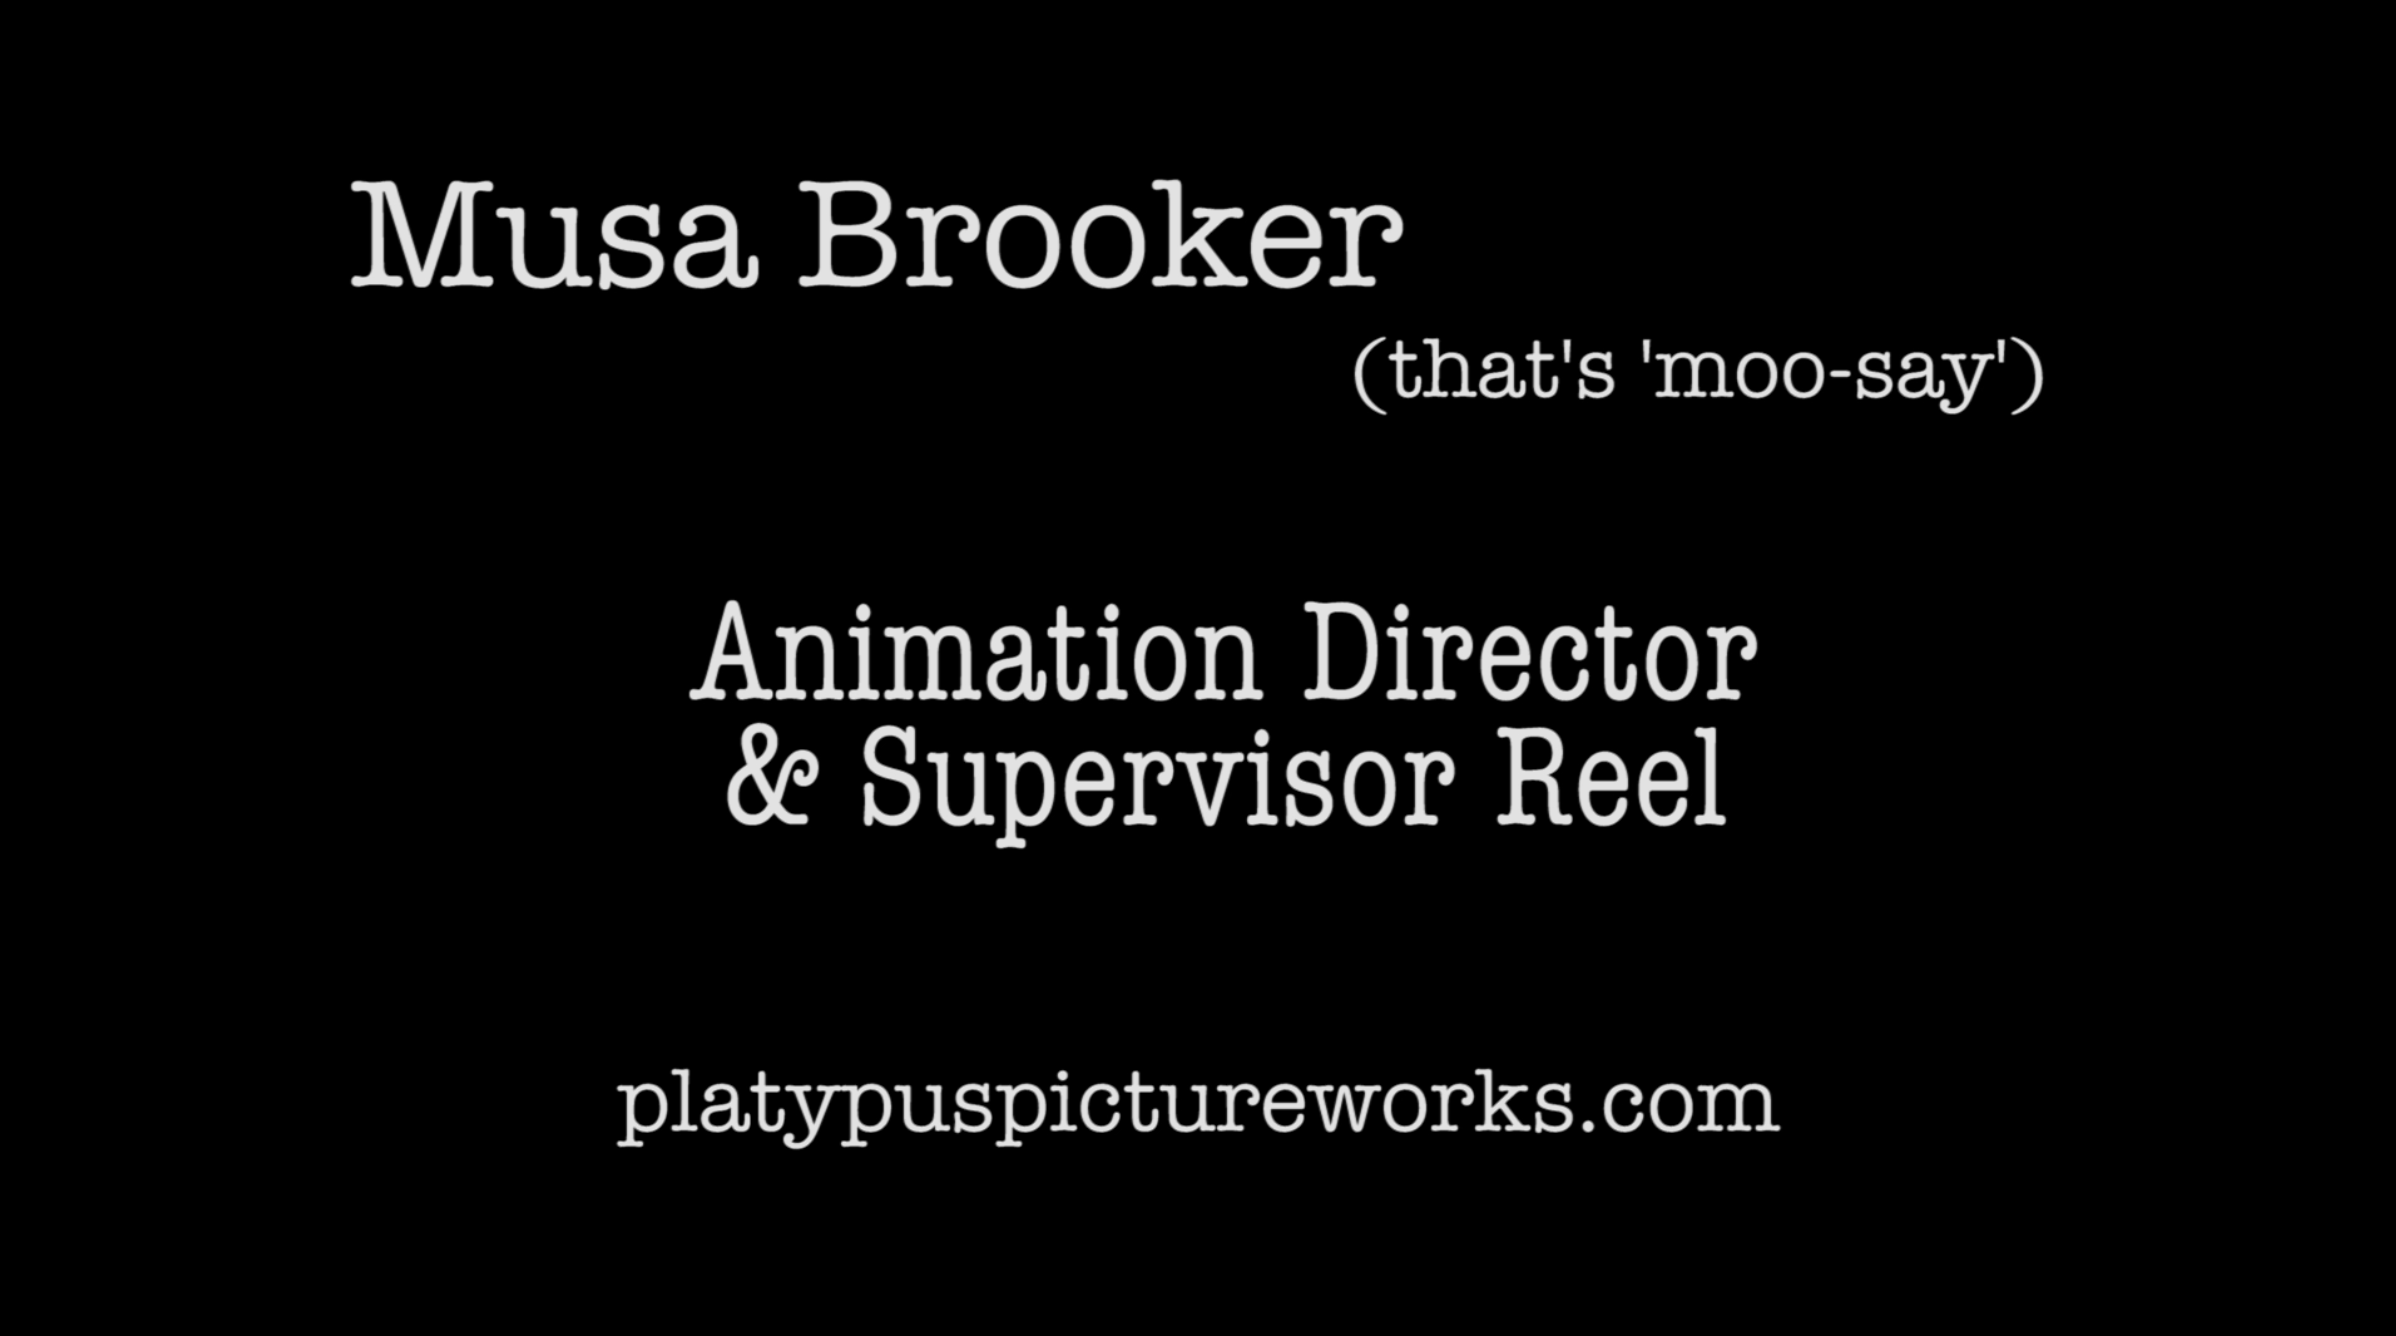 Animation Director/Supervisor Reel